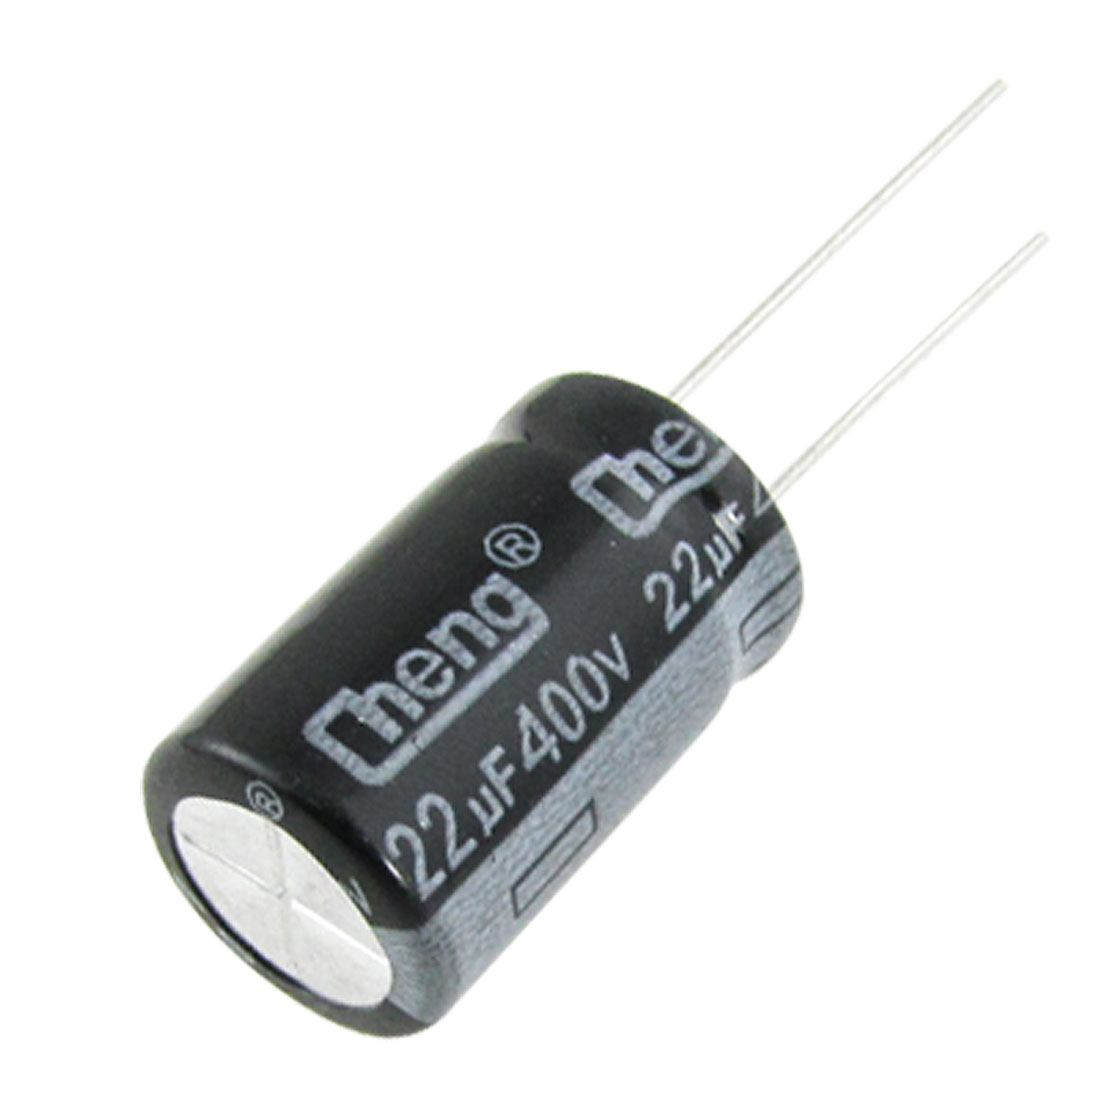 50 Pcs 400V 22uF 13 x 20mm Radial Aluminum Electrolytic Capacitors